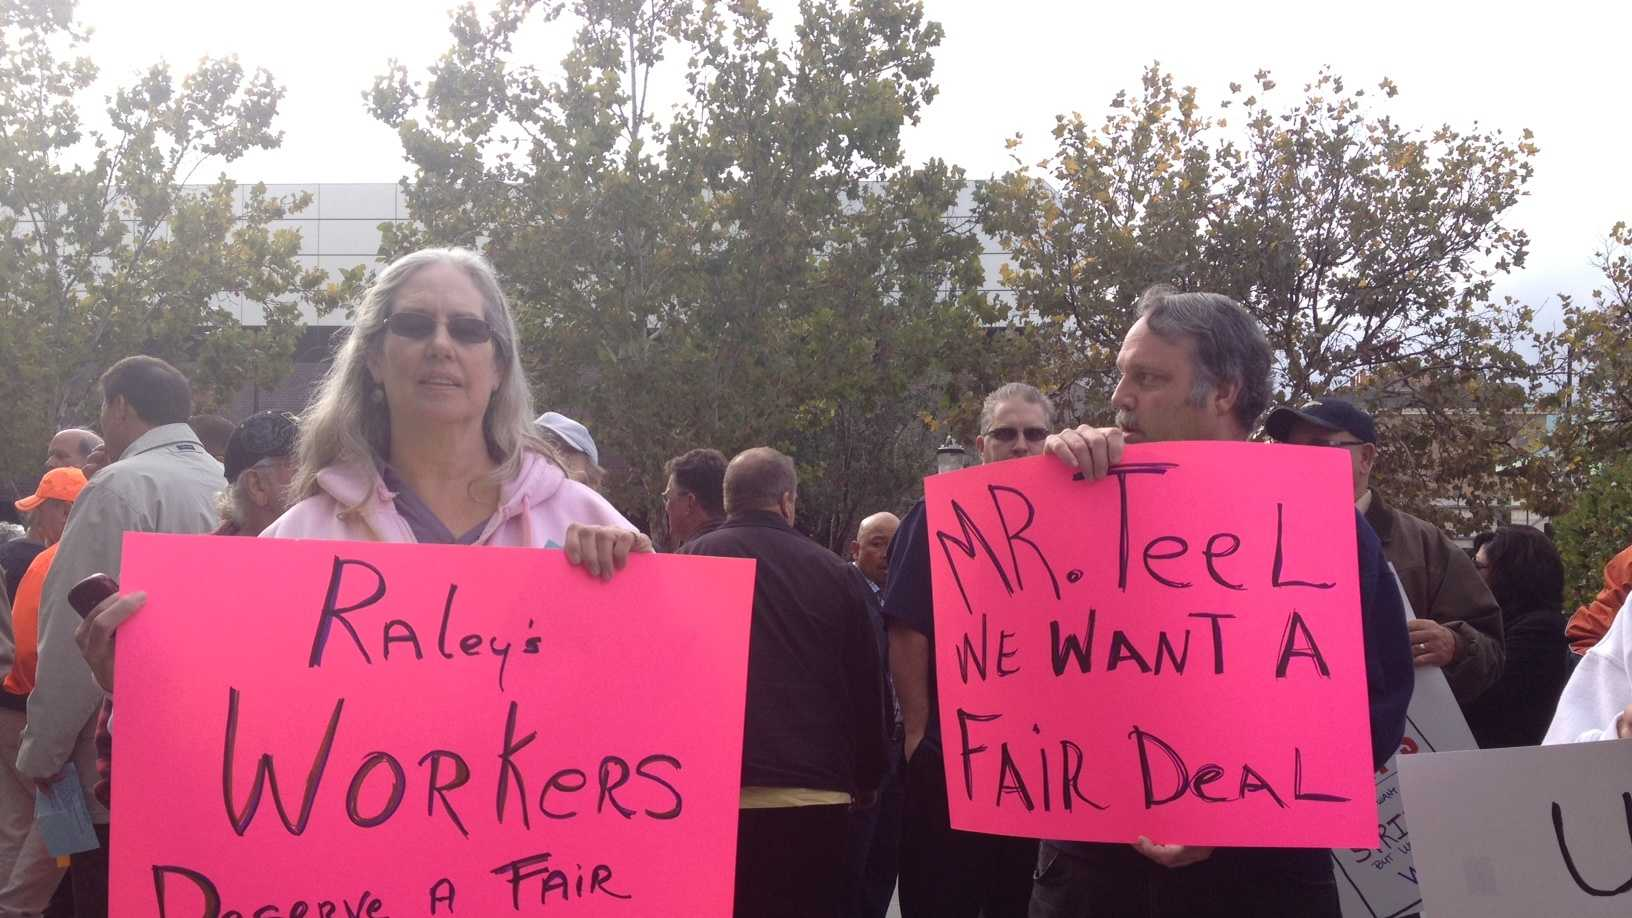 Raley's workers from Granite Bay and Fair Oaks rallied outside federal courthouse at 5th & I streets.